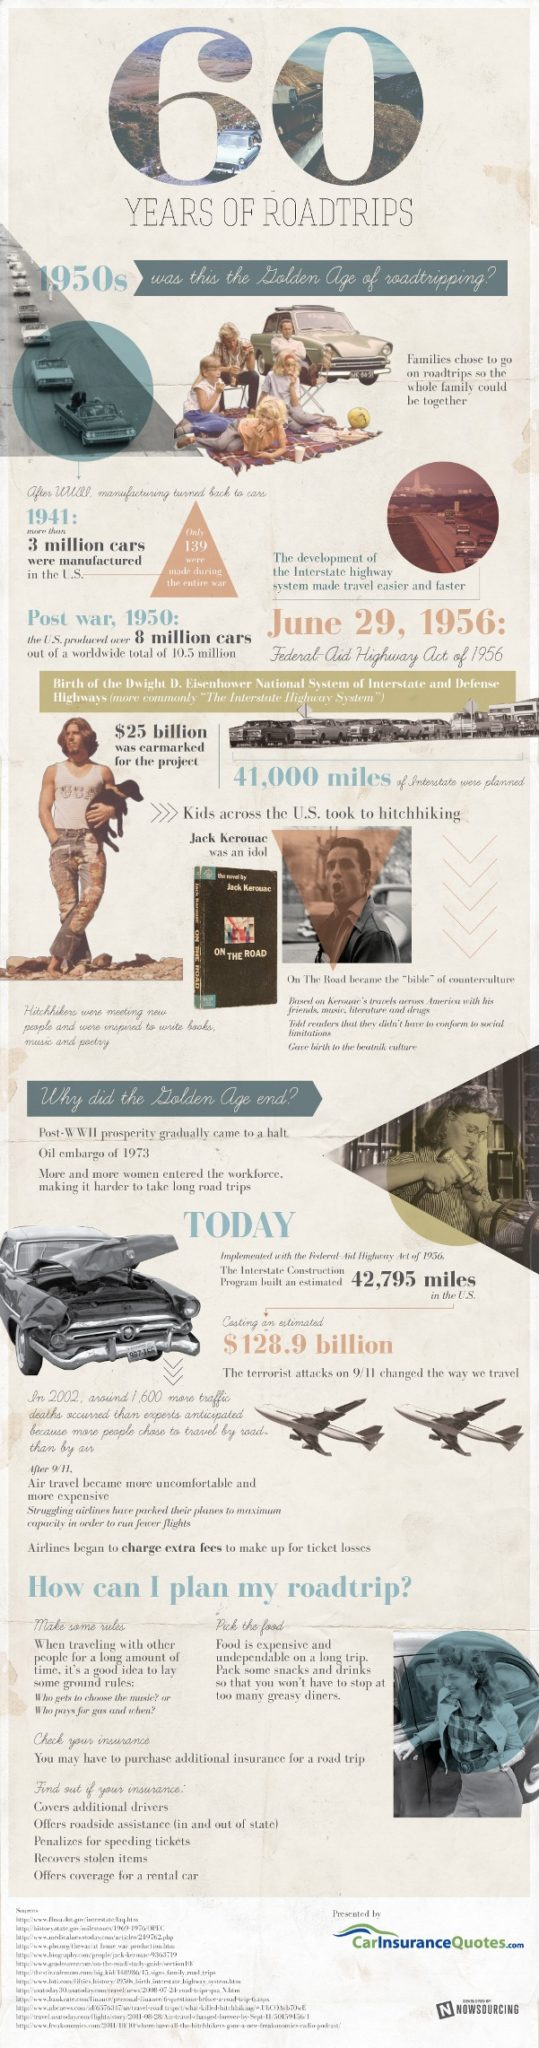 Road trips: 60 years of road tripping in America [Infographic]